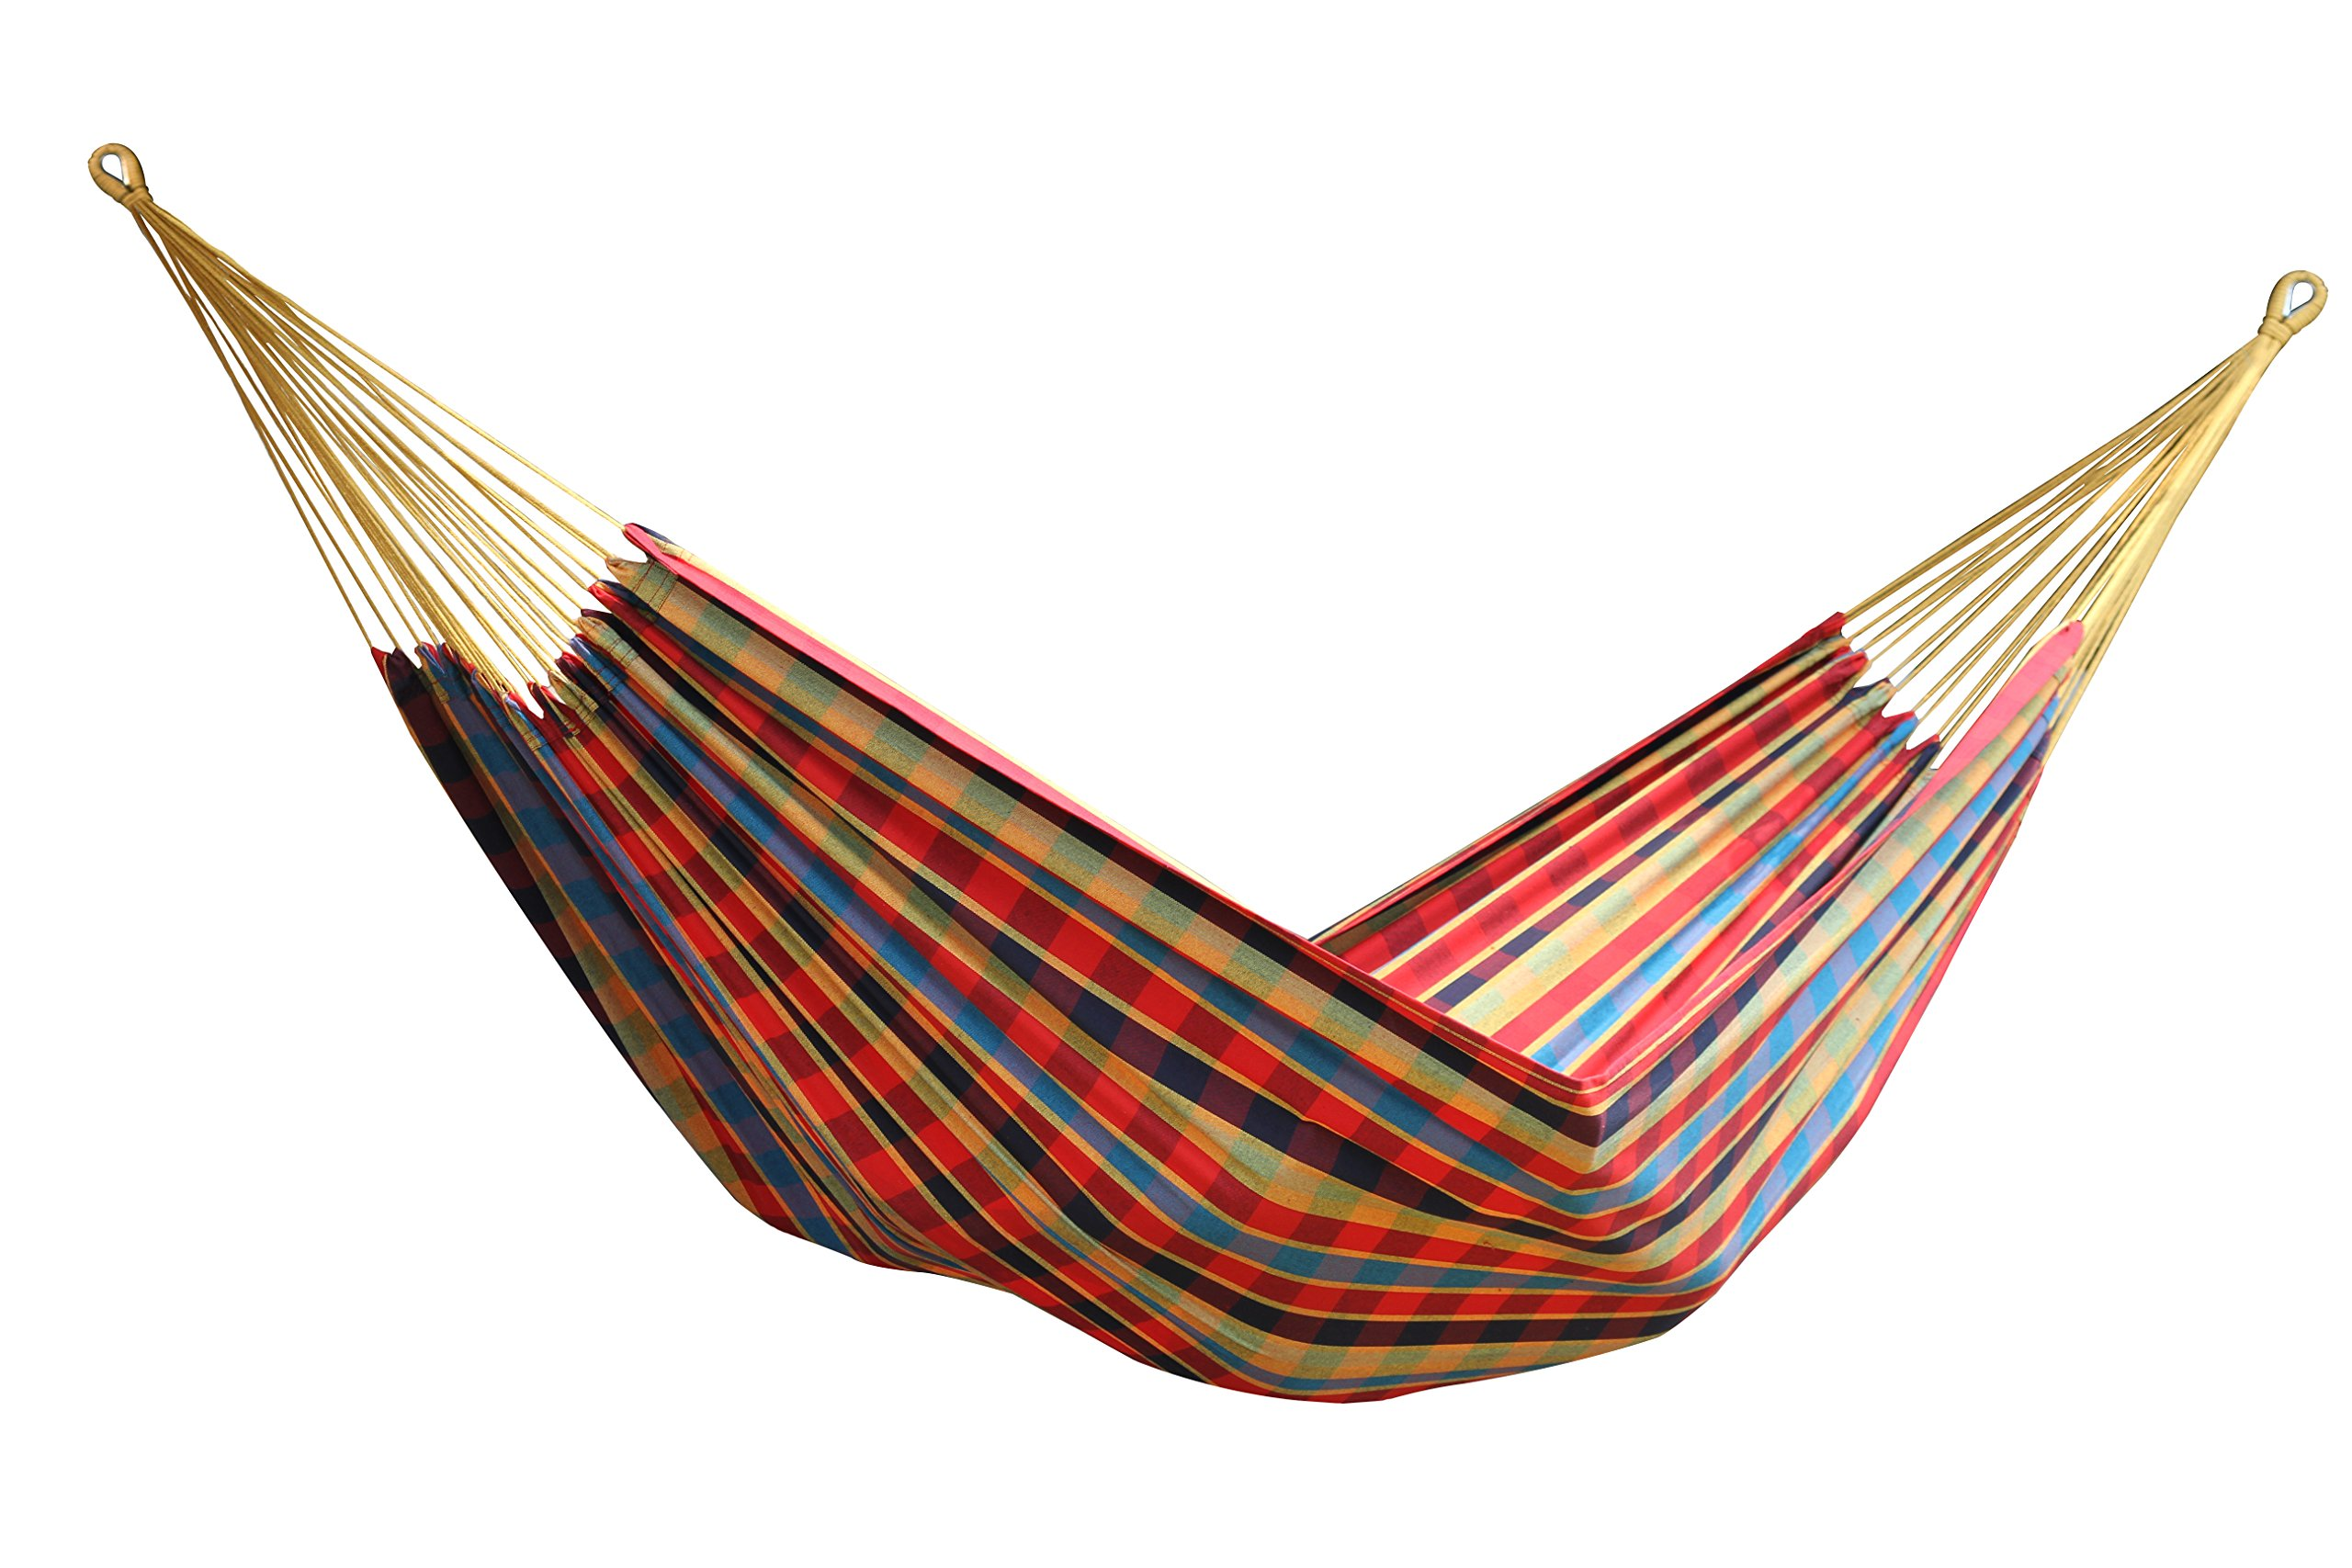 "Vivere BRAZ123 Single Brazilian Hammock, Paradise - Designed for one, the breathable 100% cotton fabric of this hammock makes relaxation effortless. Now with a larger hammock bed, measuring 83"" x 59"" for maximum comfort. Folds into a compact size so traveling with a hammock is easier than ever. - patio-furniture, patio, hammocks - 81Vx7CH9vWL -"